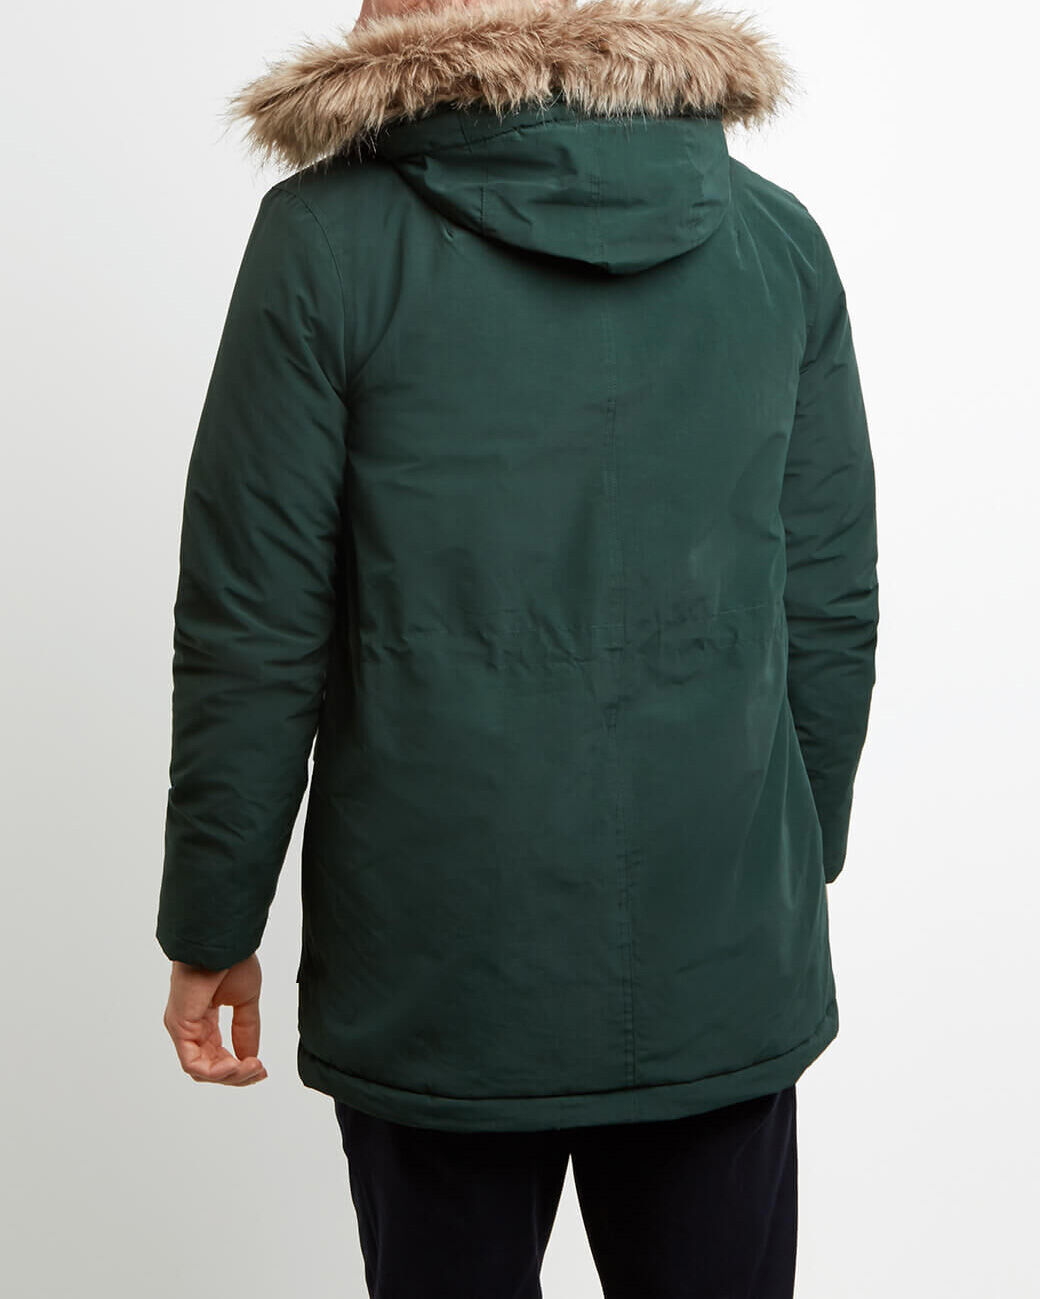 Lyle-and-Scott-Mens-Winterweight-Microfleece-Lined-Parka thumbnail 11